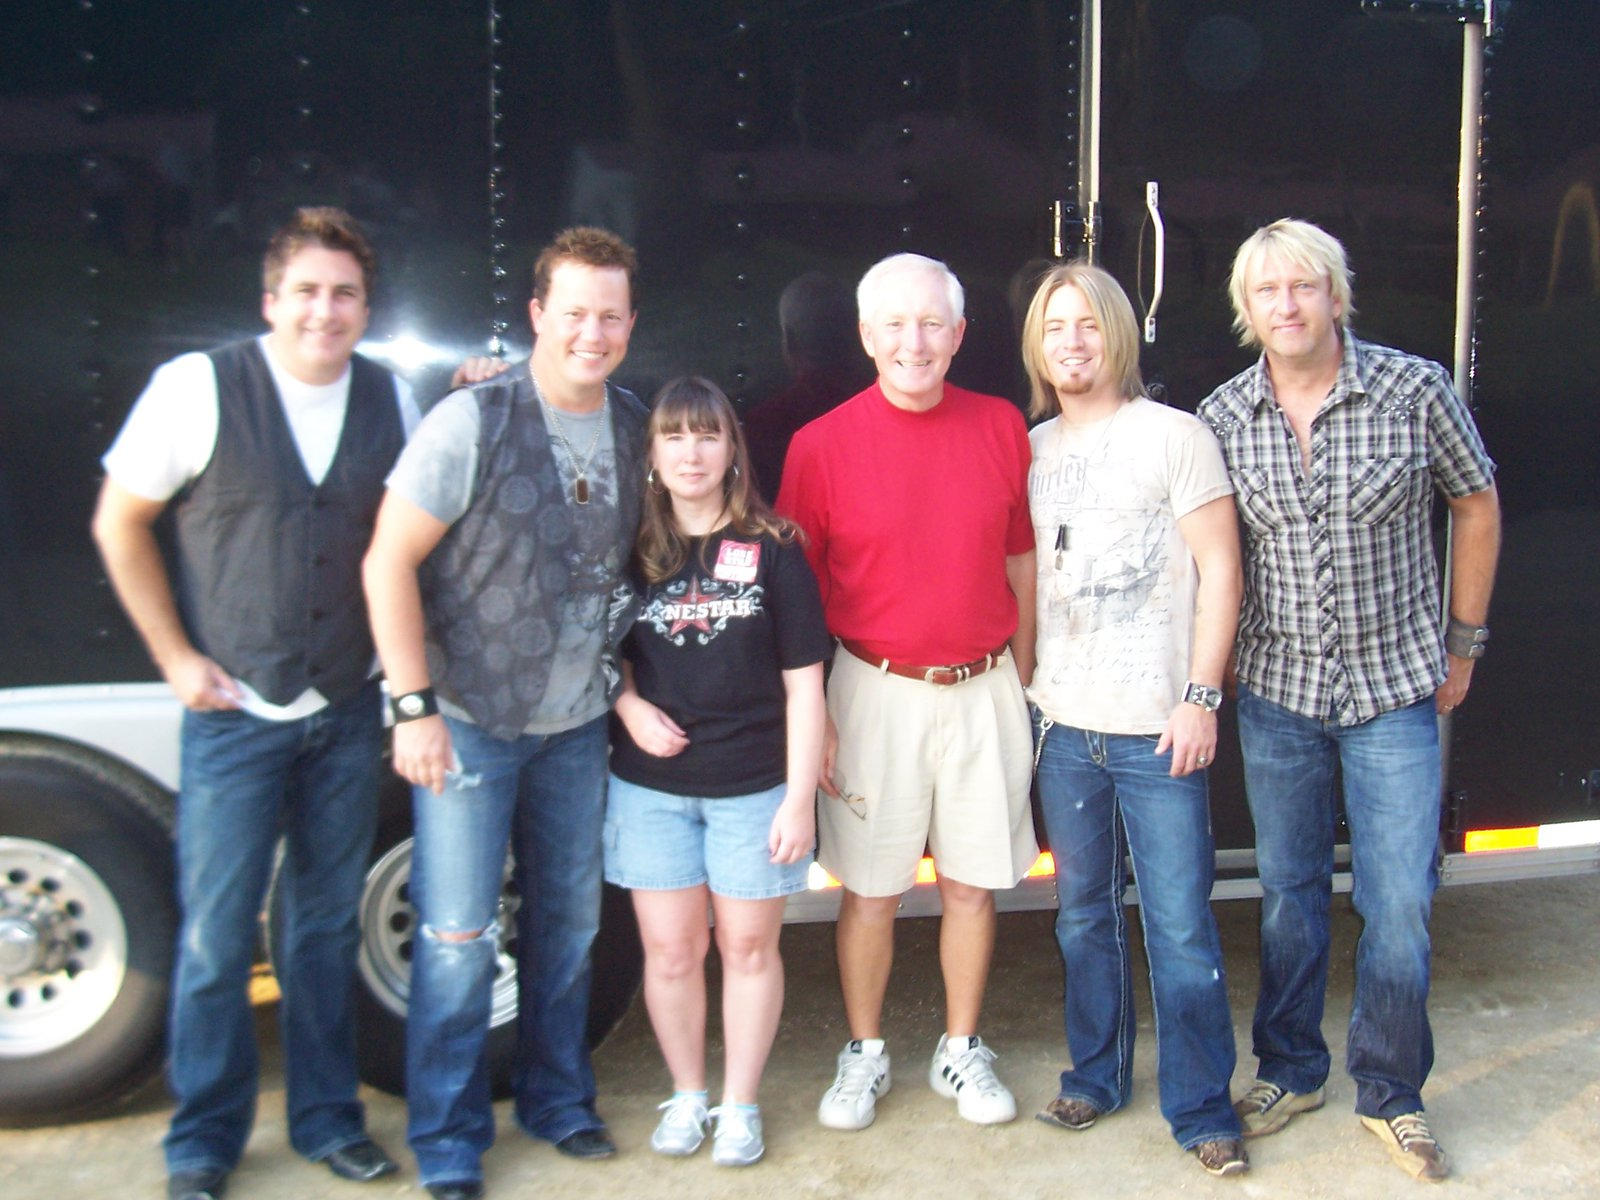 Me with dean sams from lonestar! : )